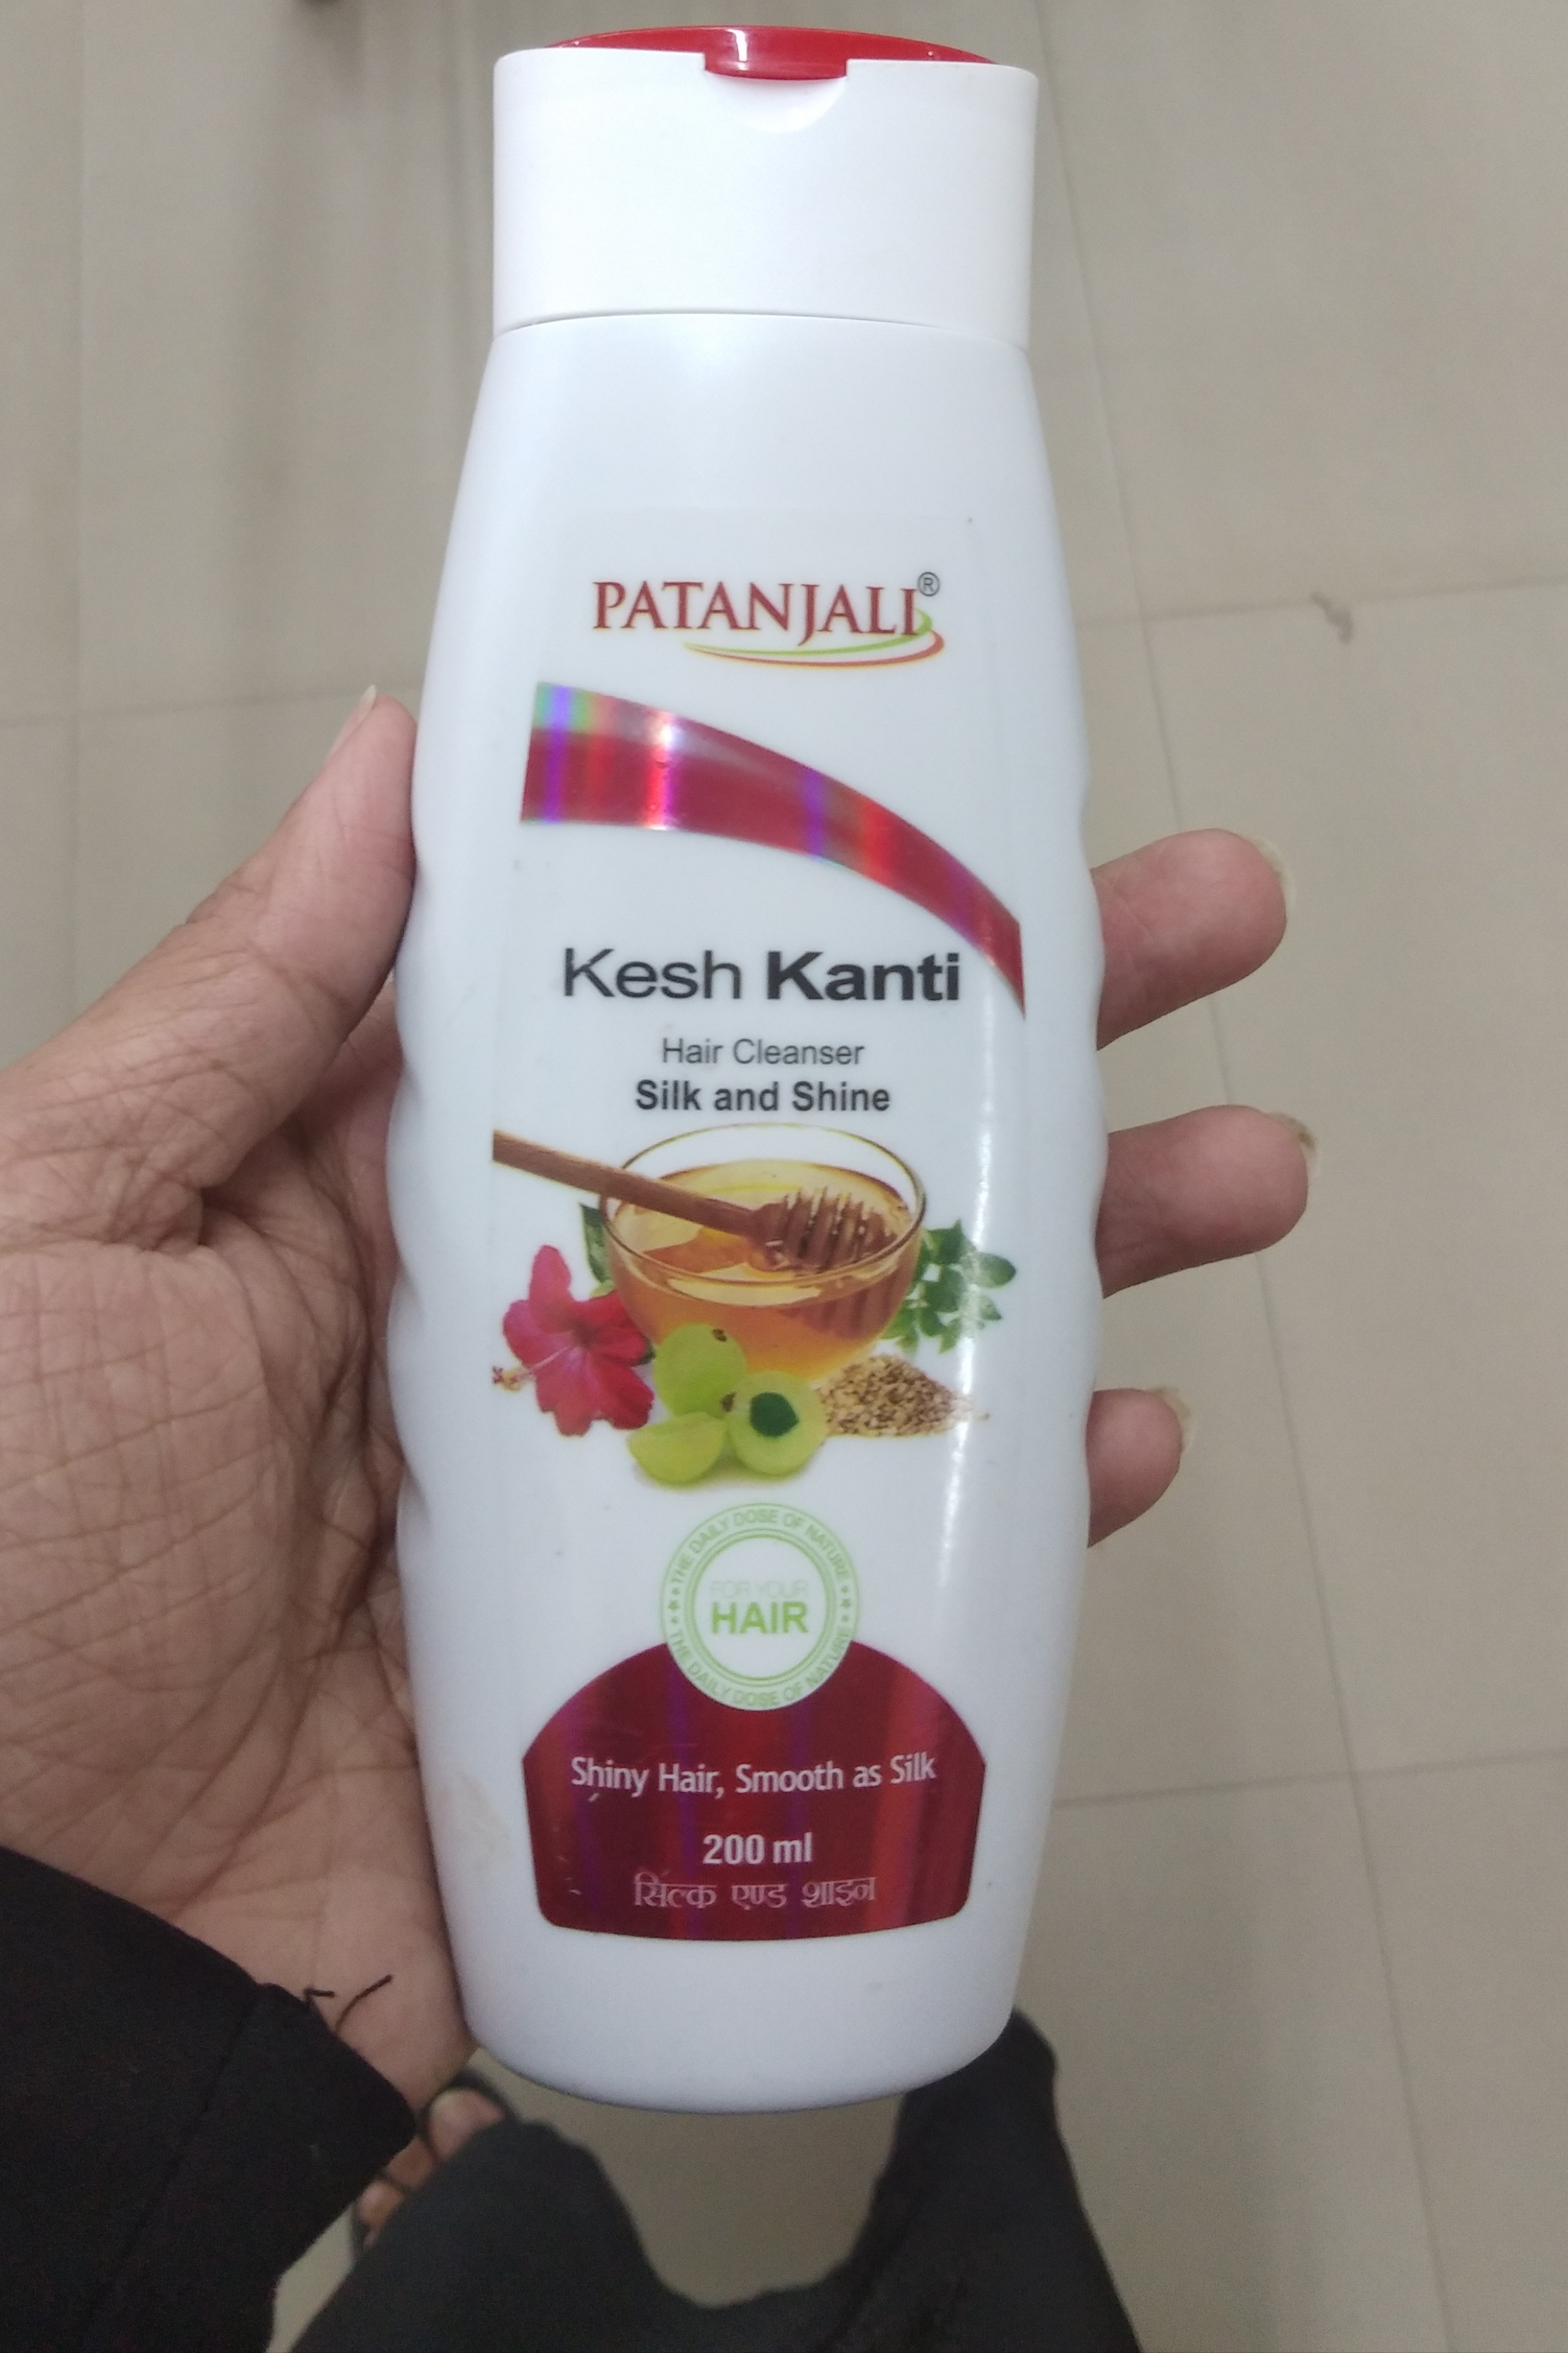 Patanjali Kesh Kanti Silk And Shine Hair Cleanser-Cleanses hair but does not control hair fall-By Nasreen-1